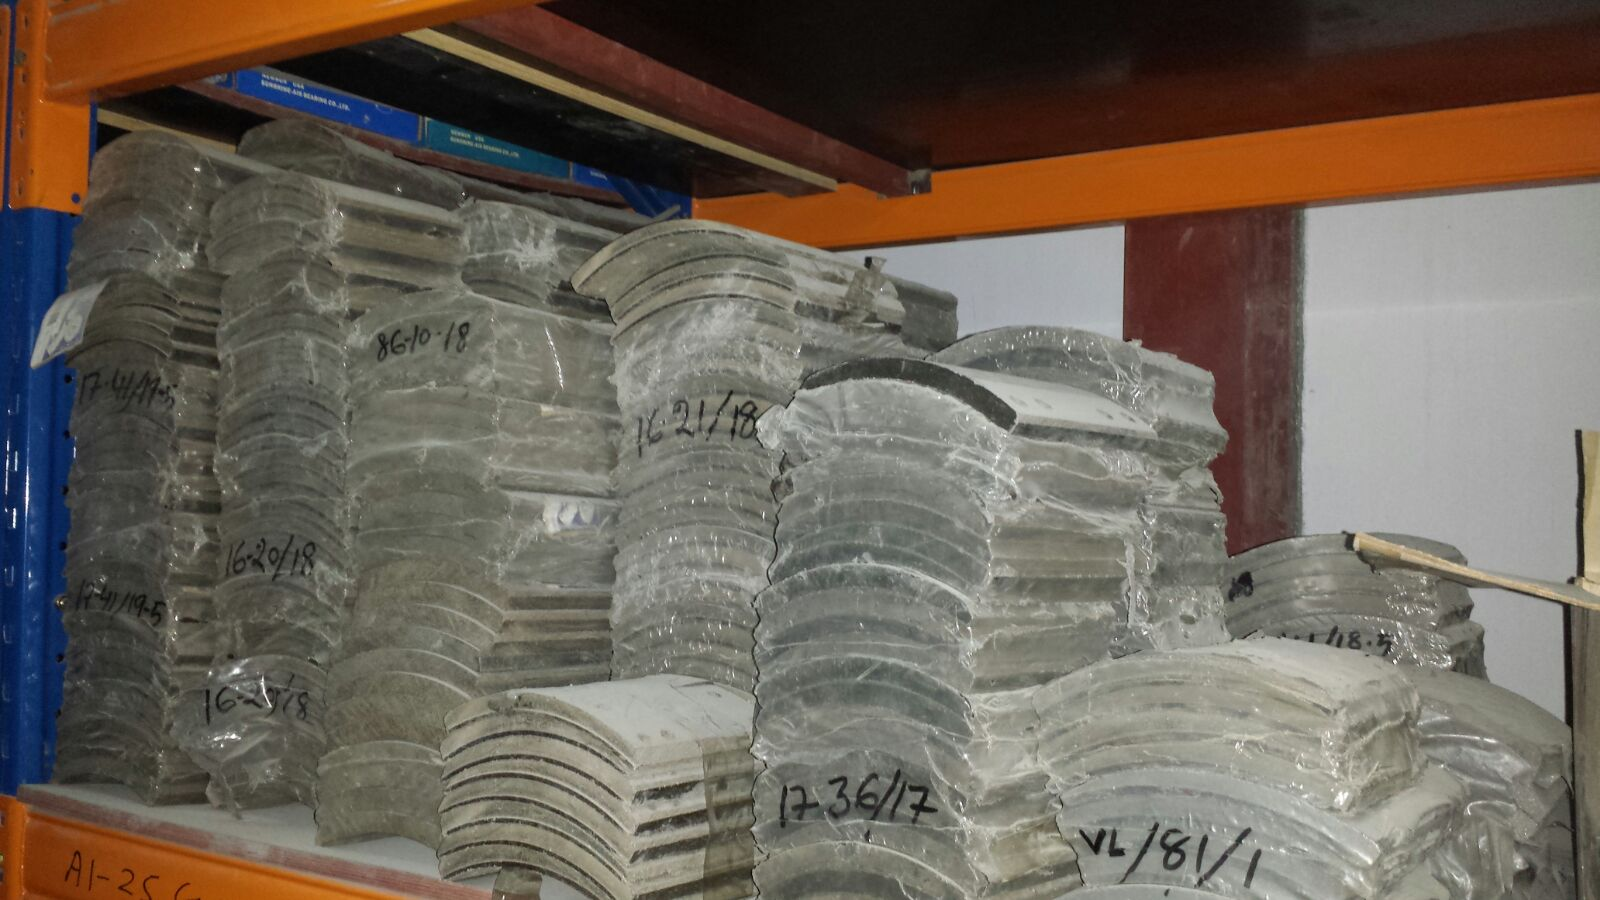 21185 - Truck Parts Stocklot Sale UAE